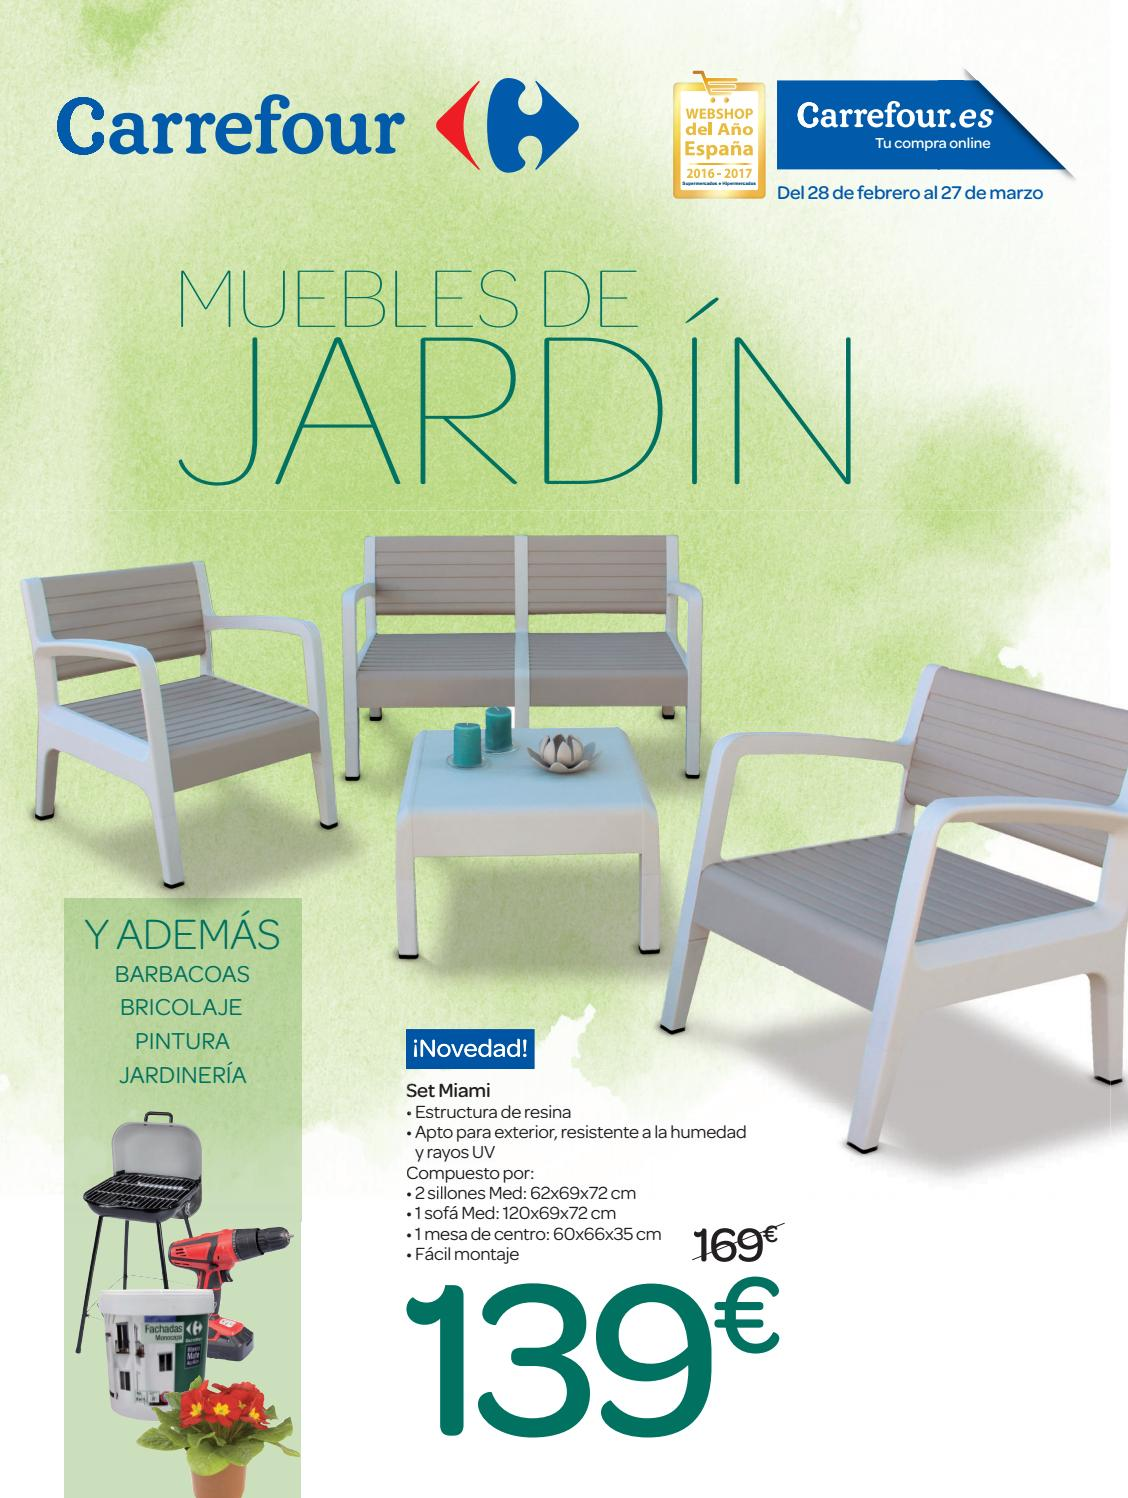 Muebles de jardin carrefour by ofertas supermercados issuu for Muebles de jardin alcampo